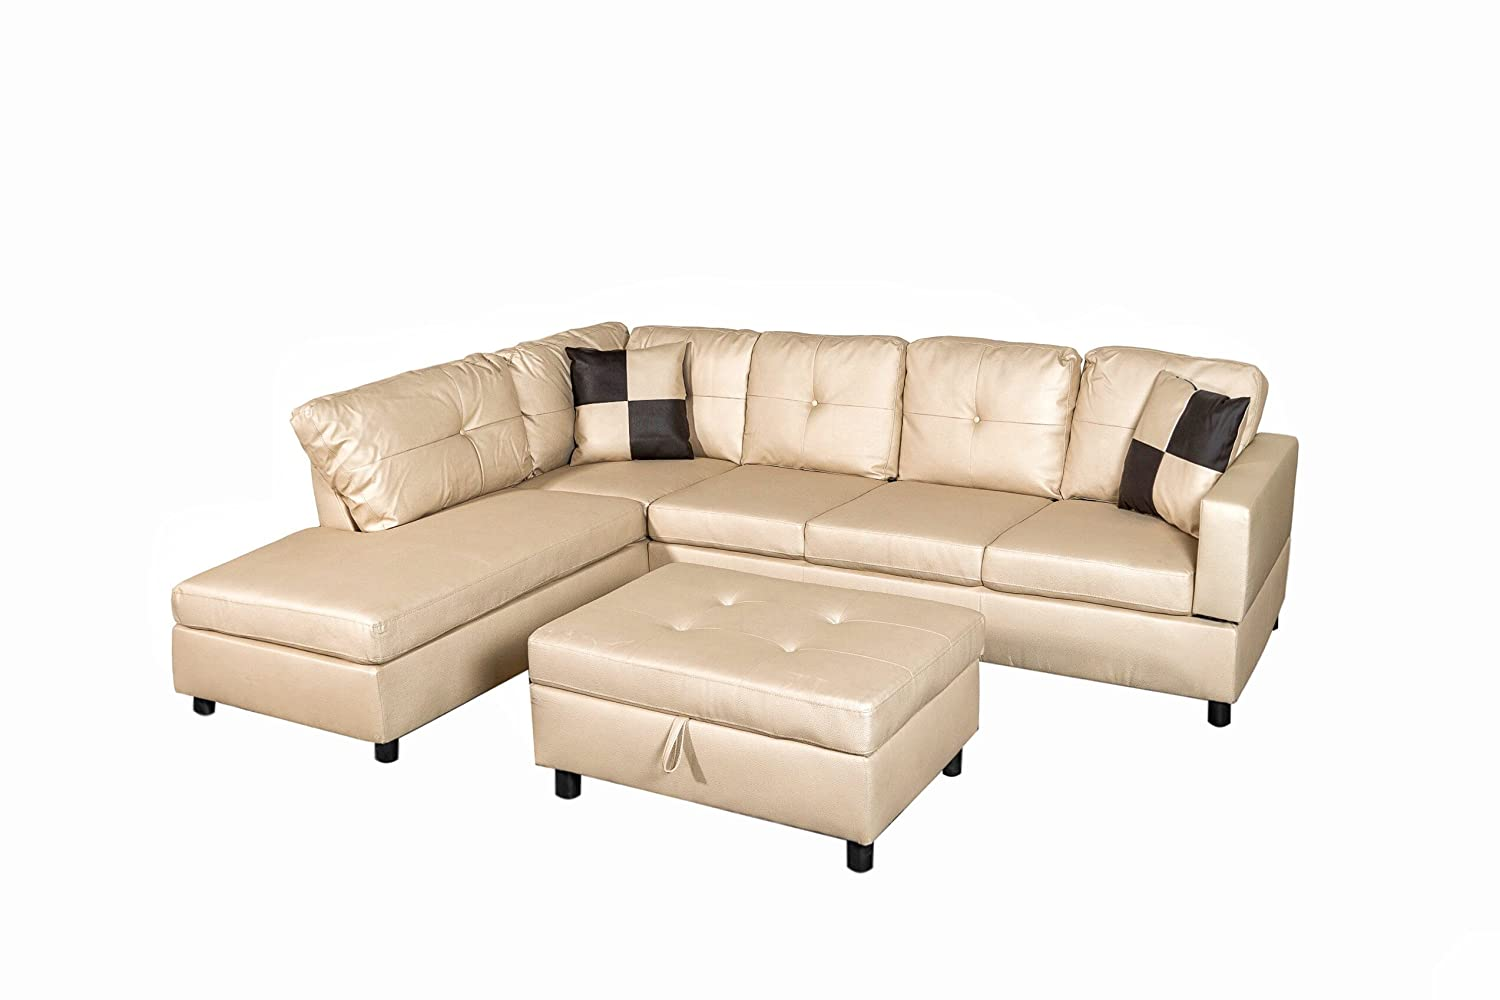 Amazon.com: Legend Faux Leather Right-Facing Sectional Sofa Set With ...